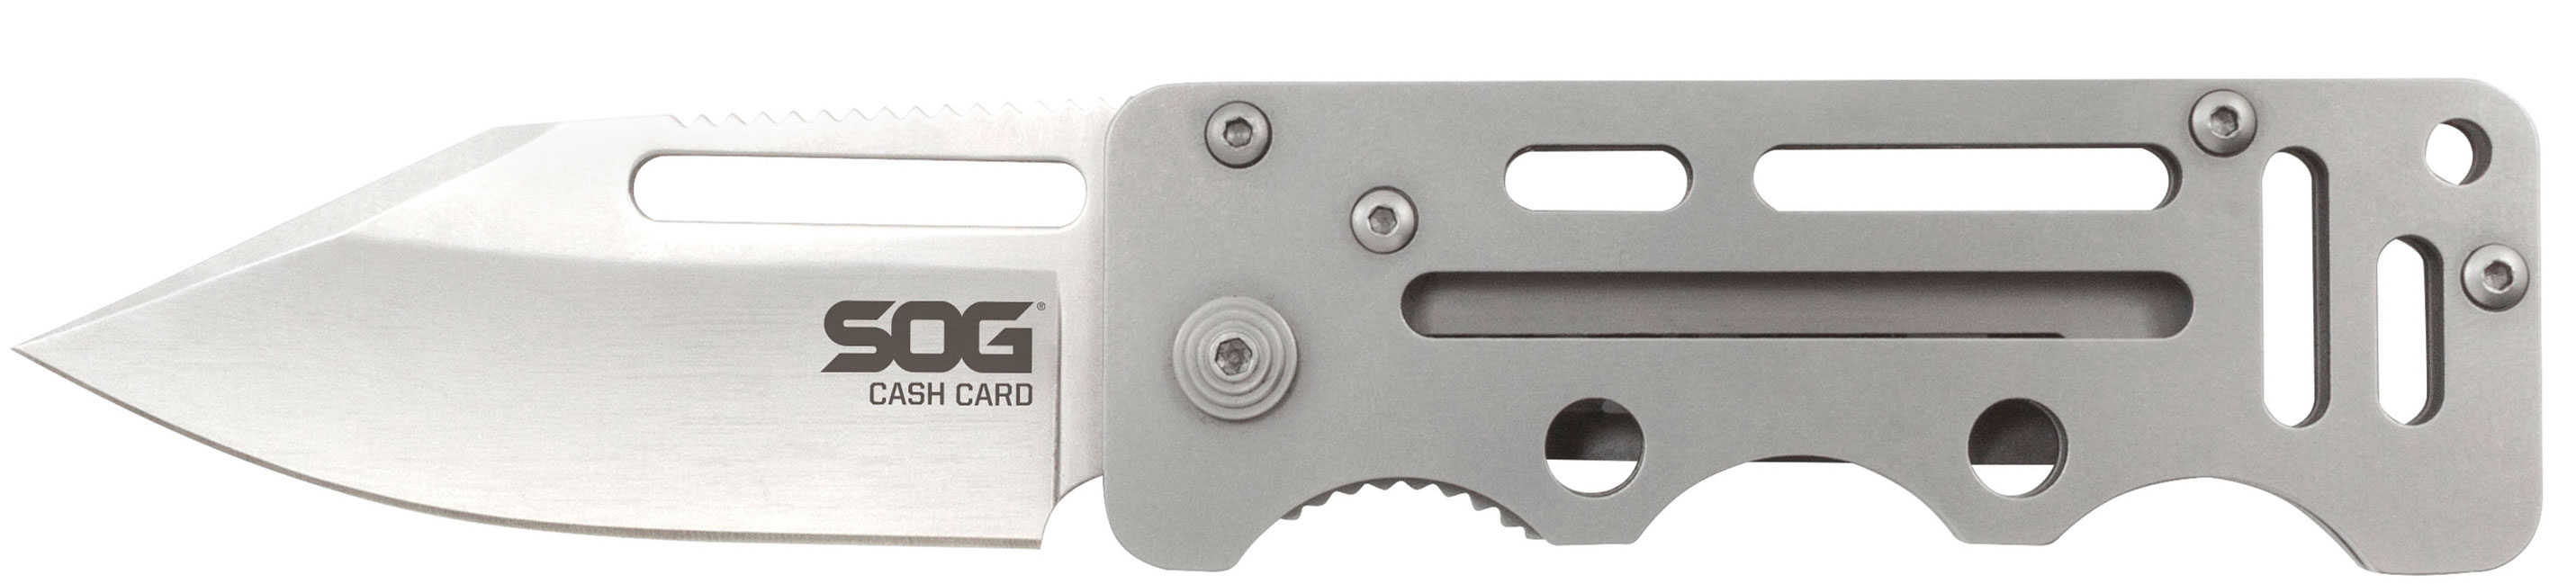 Buy SOG Cash Card and Ultra C-Ti at KnifeCenter